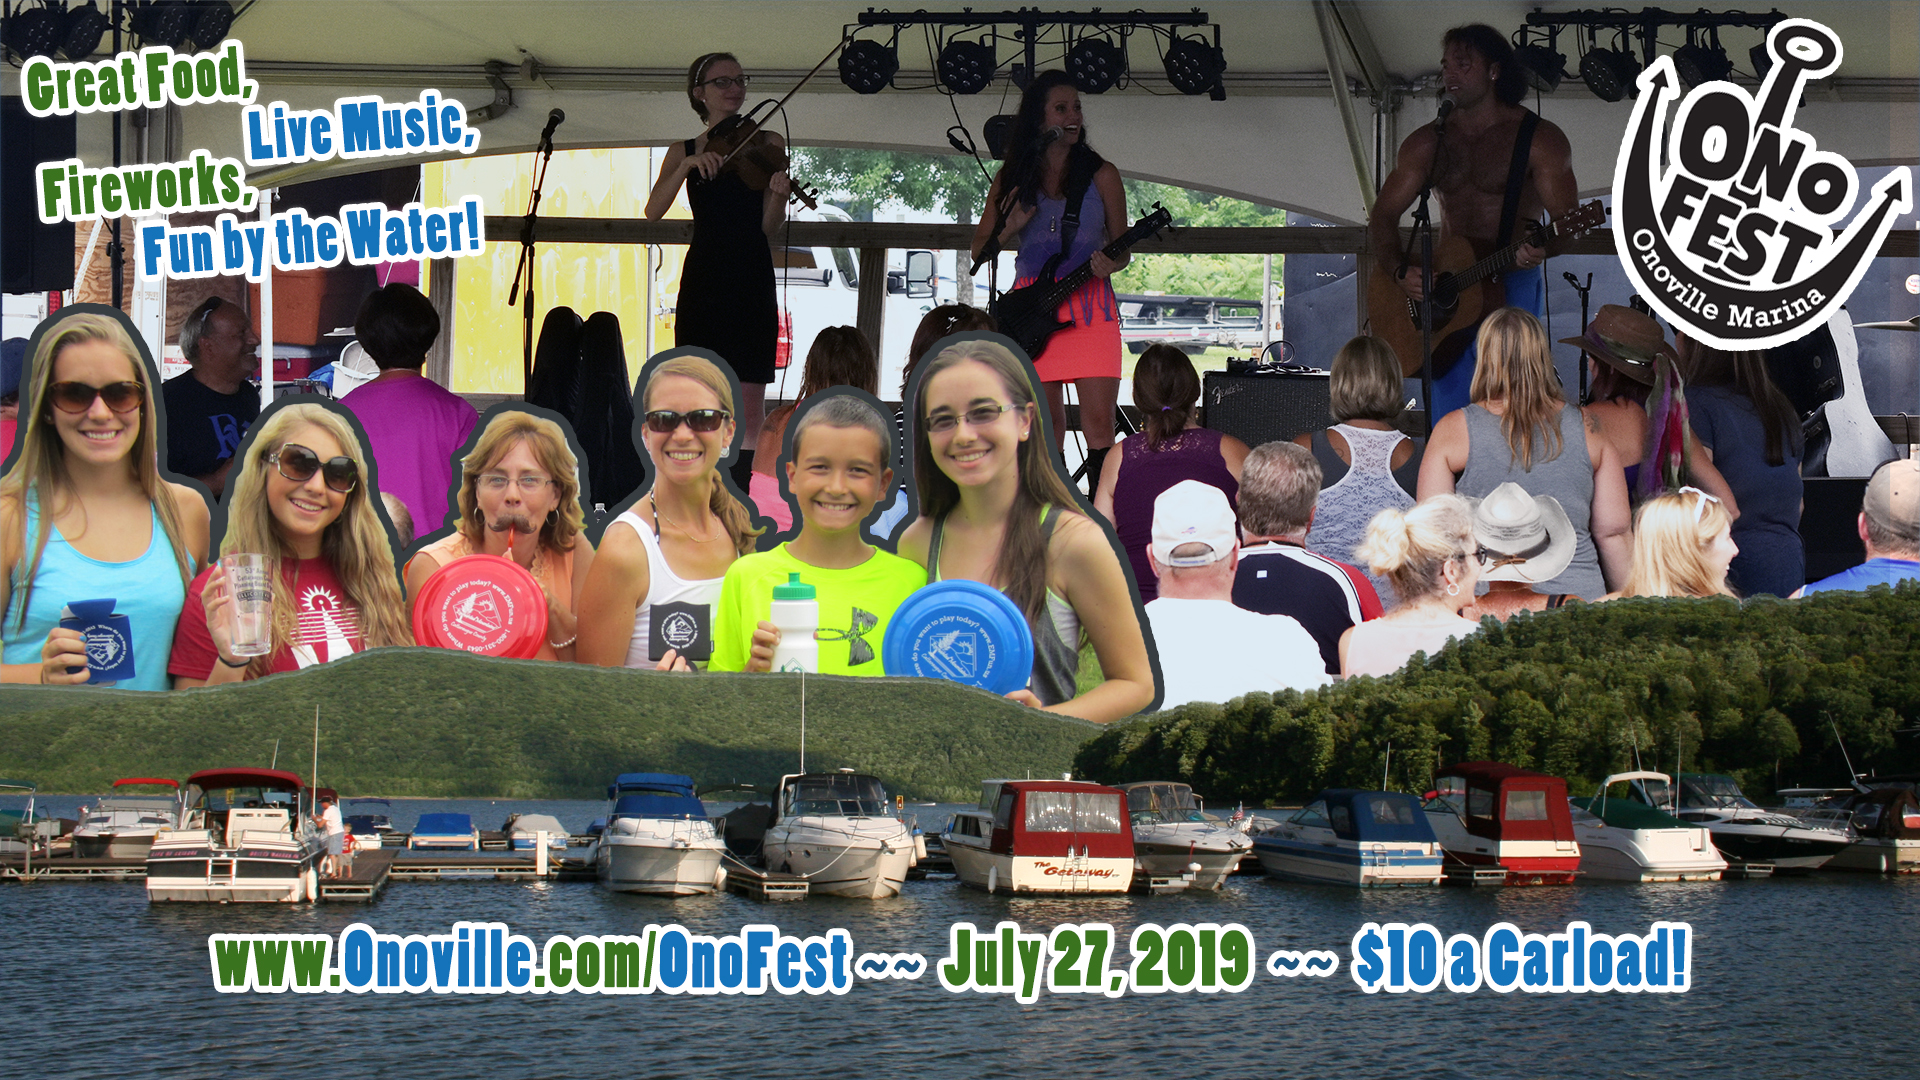 2019 Onofest at the Onoville Marina